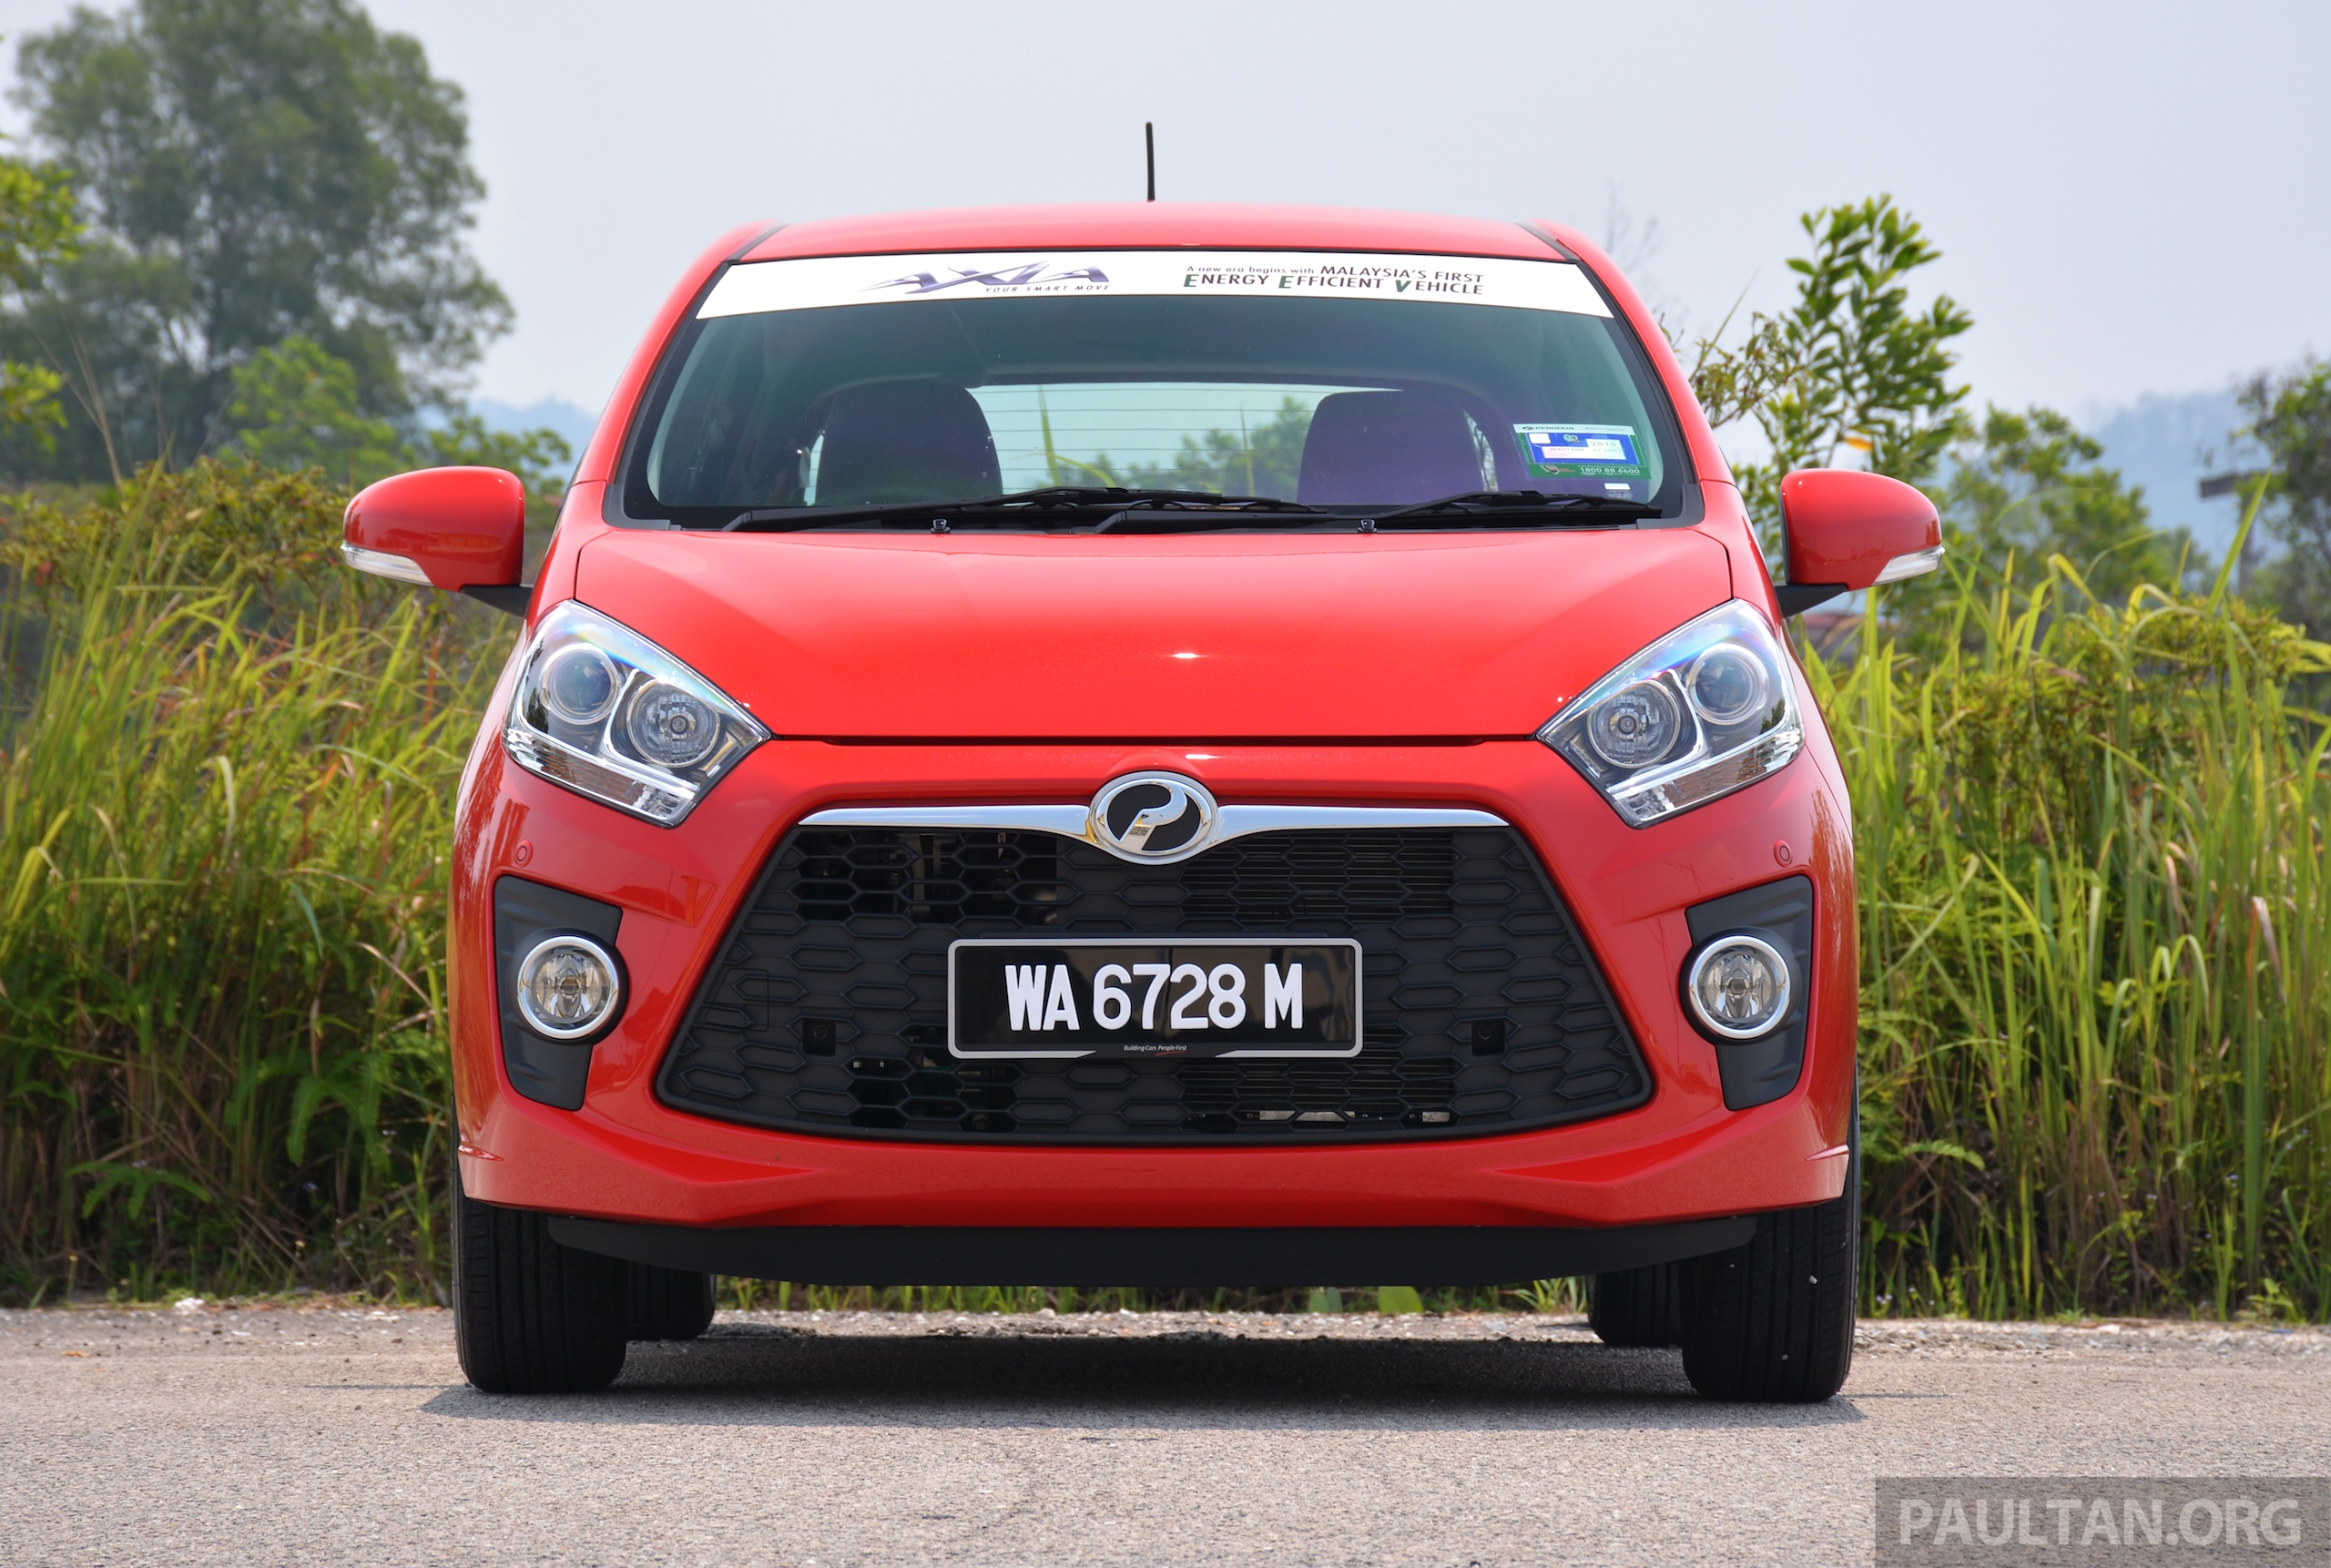 """Perodua Axia tops Trending Car Models list in Google's """"Year in Malaysian Search"""" 2014"""